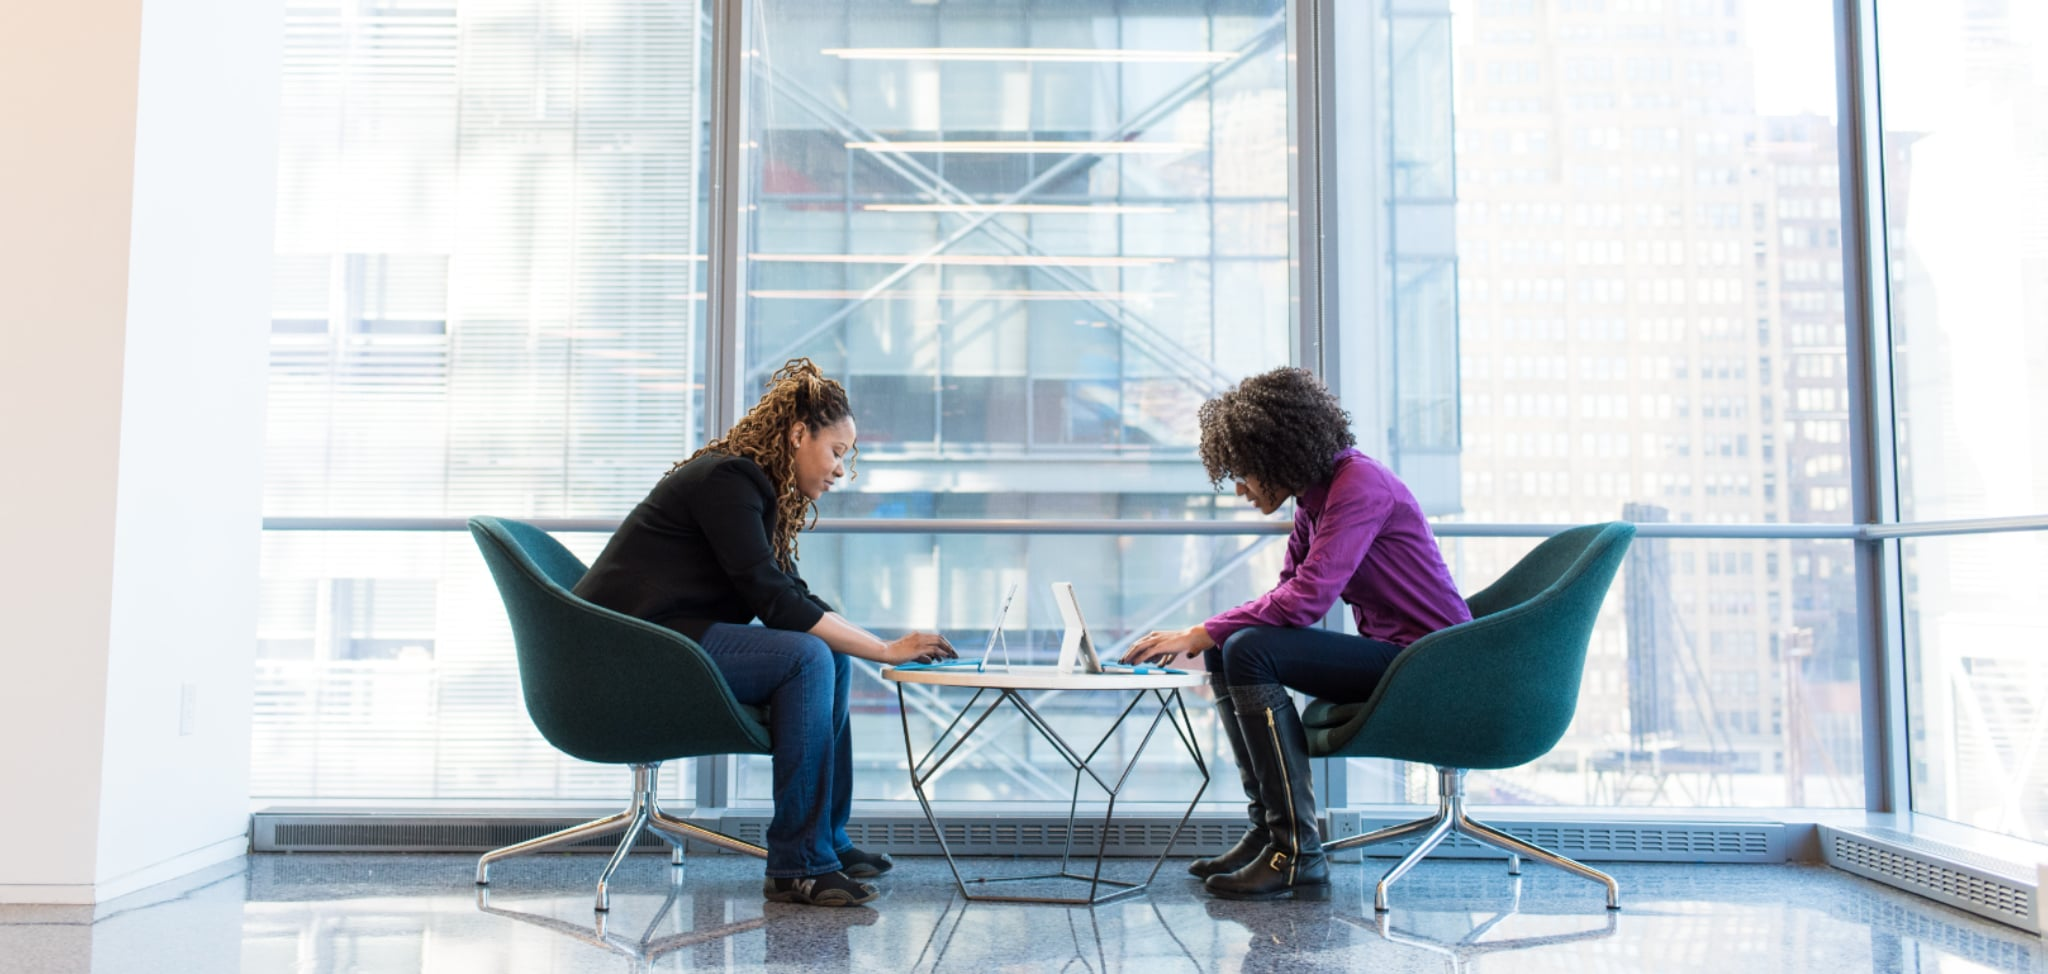 Two woman in a business meeting